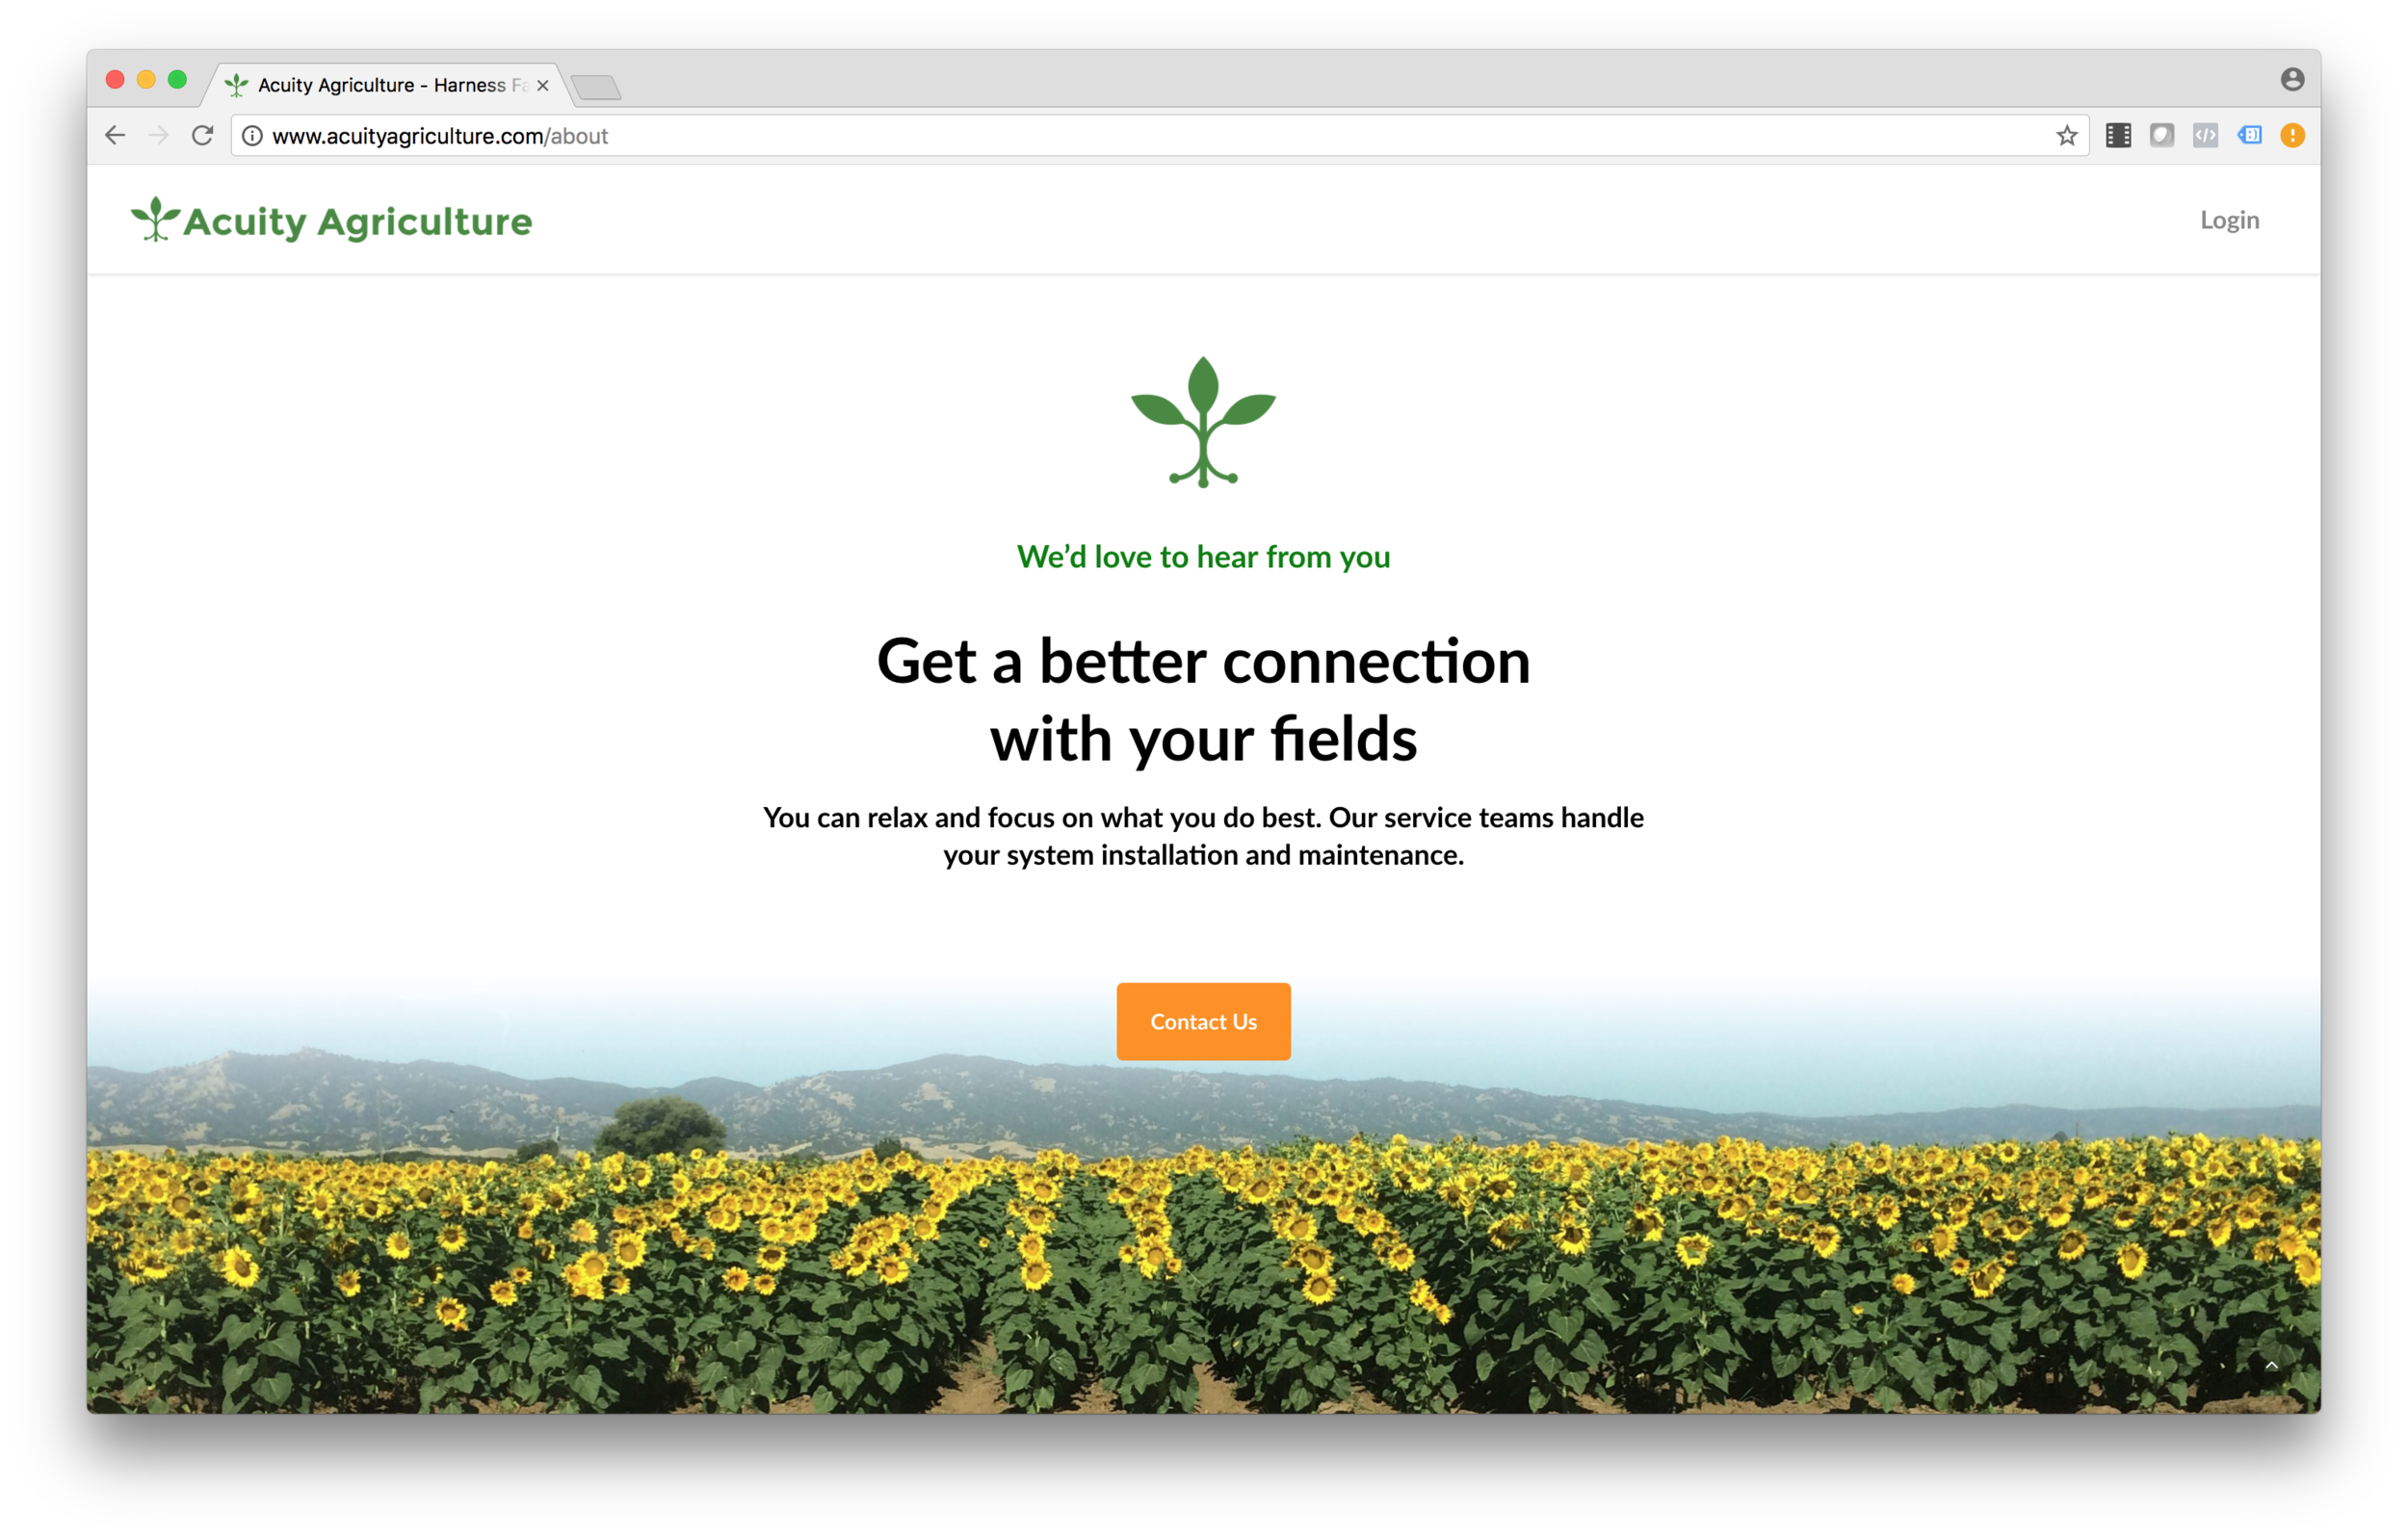 Acuity_Agriculture_Website_01.png